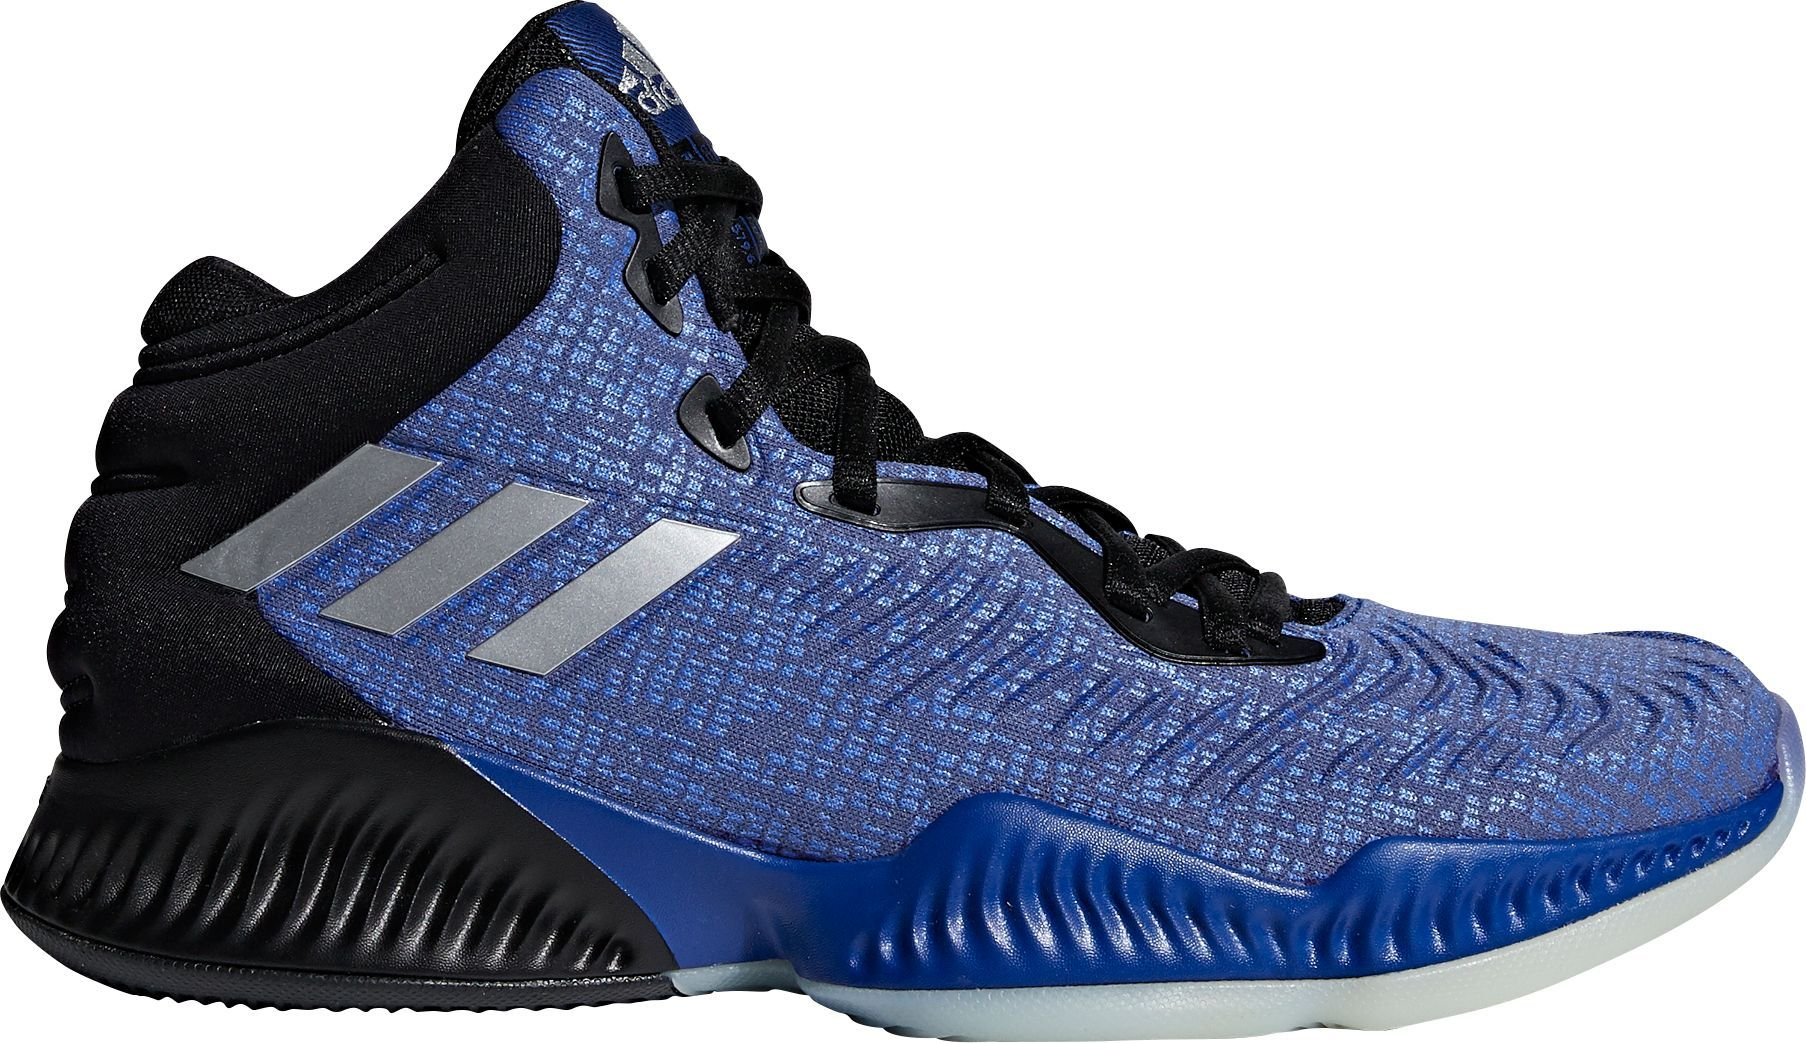 9f62728b965738 adidas Men s Mad Bounce 2018 Basketball Shoes in 2019